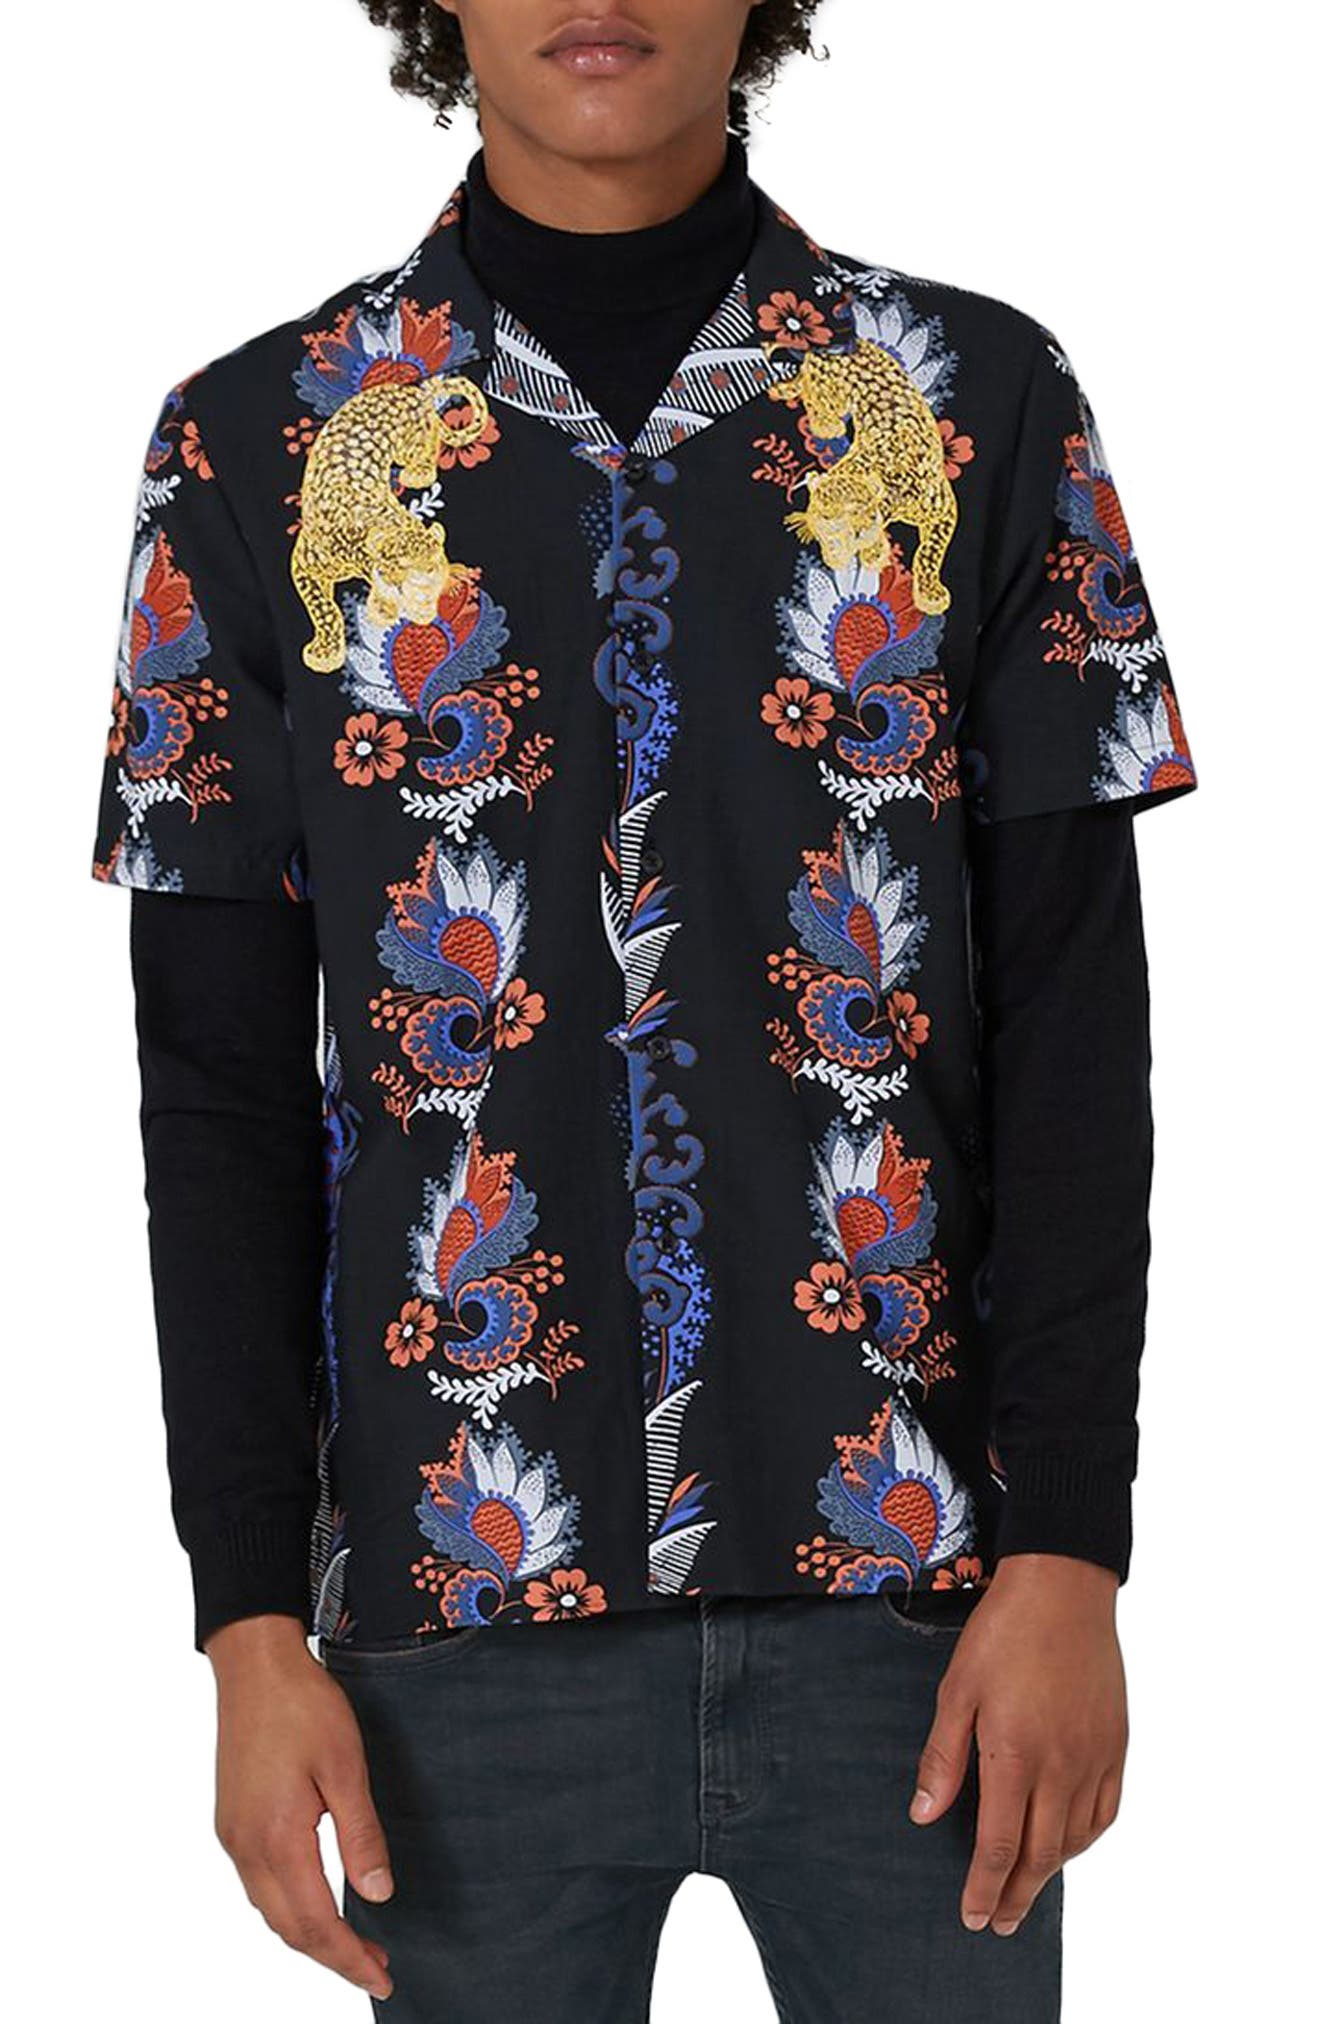 Embroidered Tiger Print Revere Collar Shirt,                         Main,                         color, Black